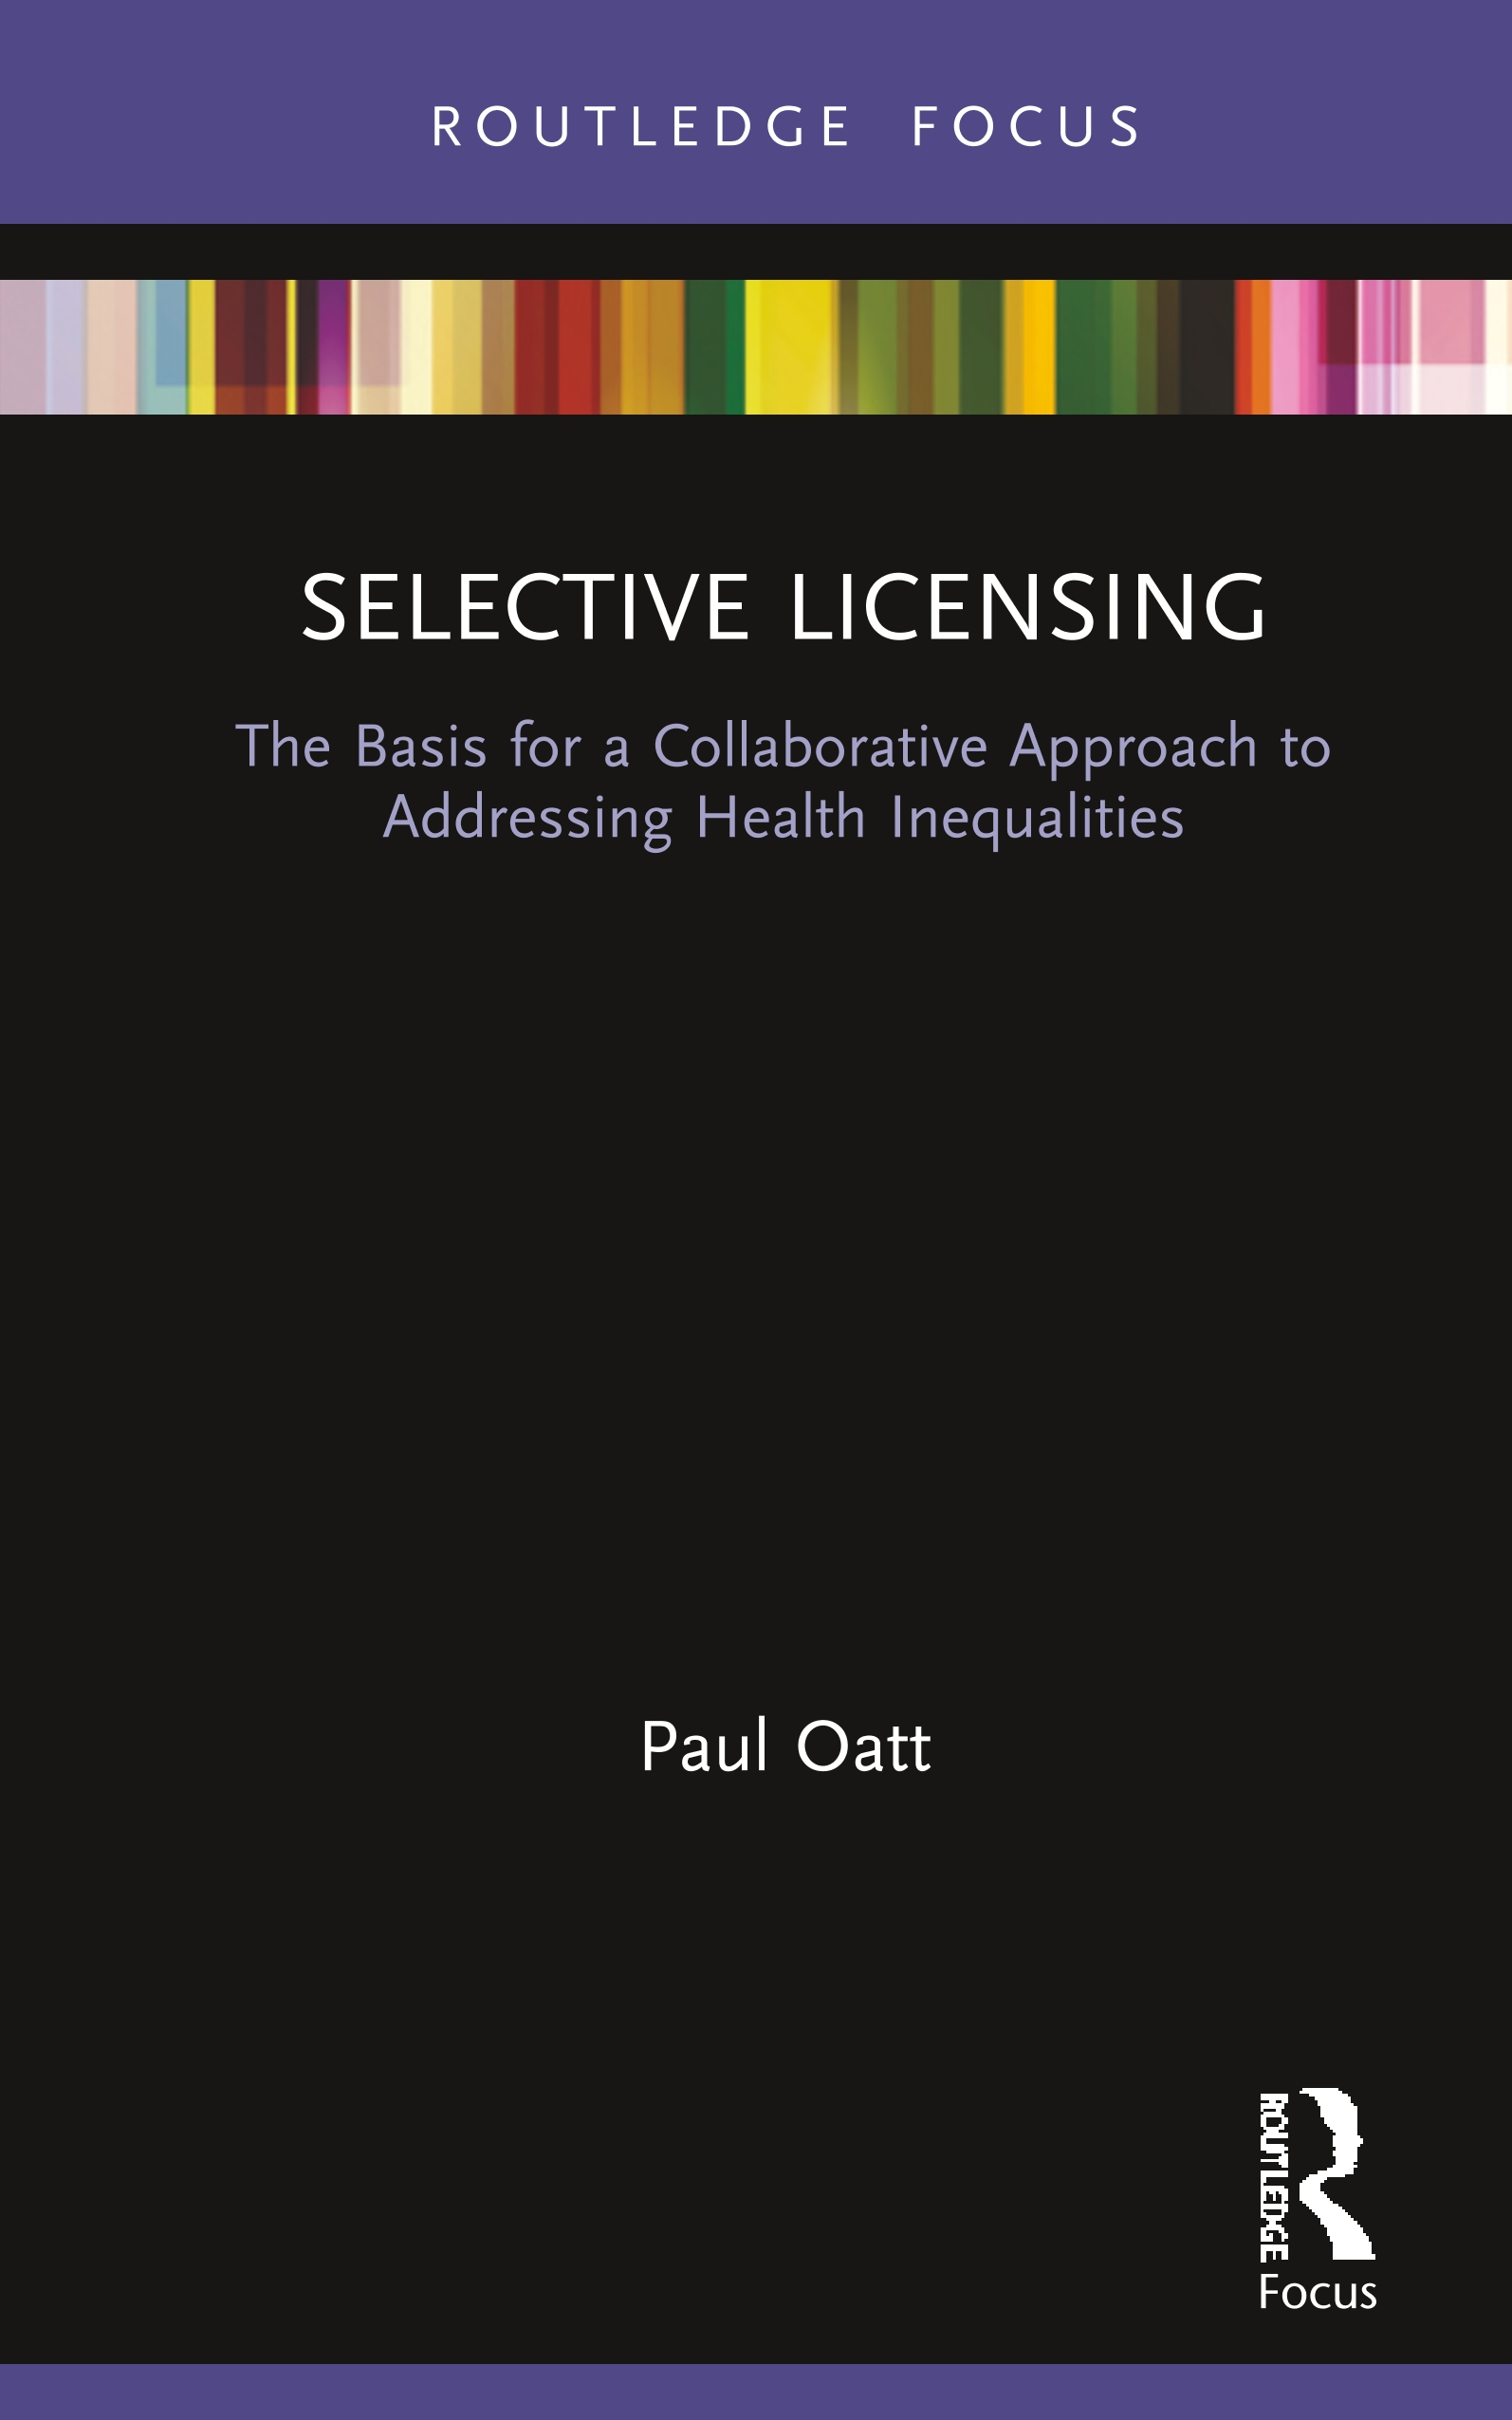 Selective Licensing: The Basis for a Collaborative Approach to Addressing Health Inequalities book cover